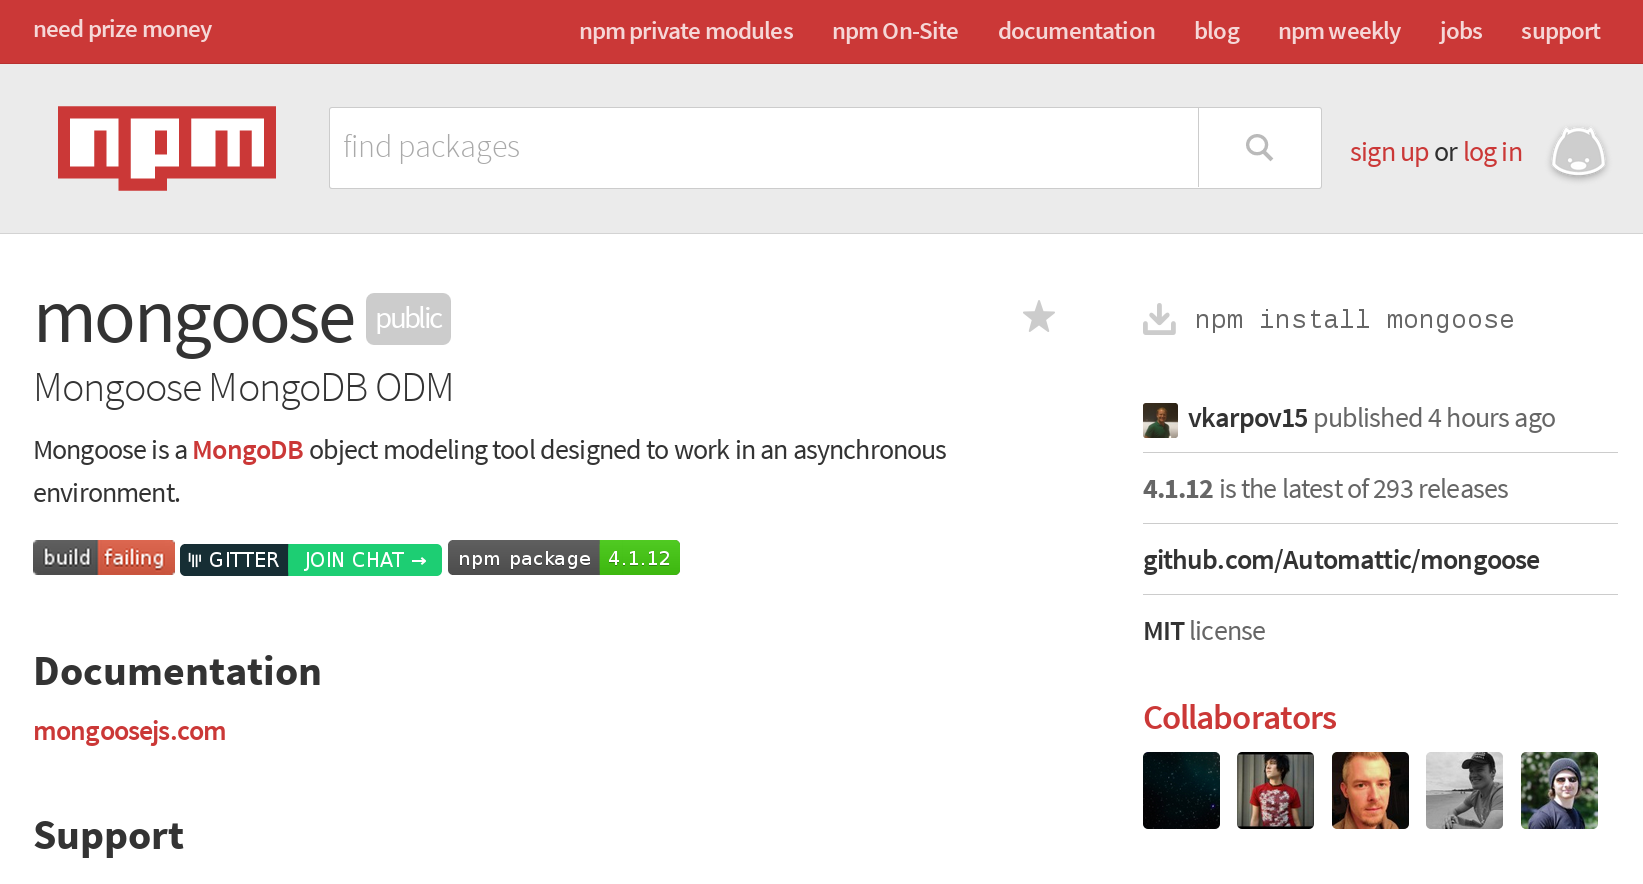 npmjs.com Mongoose package detail